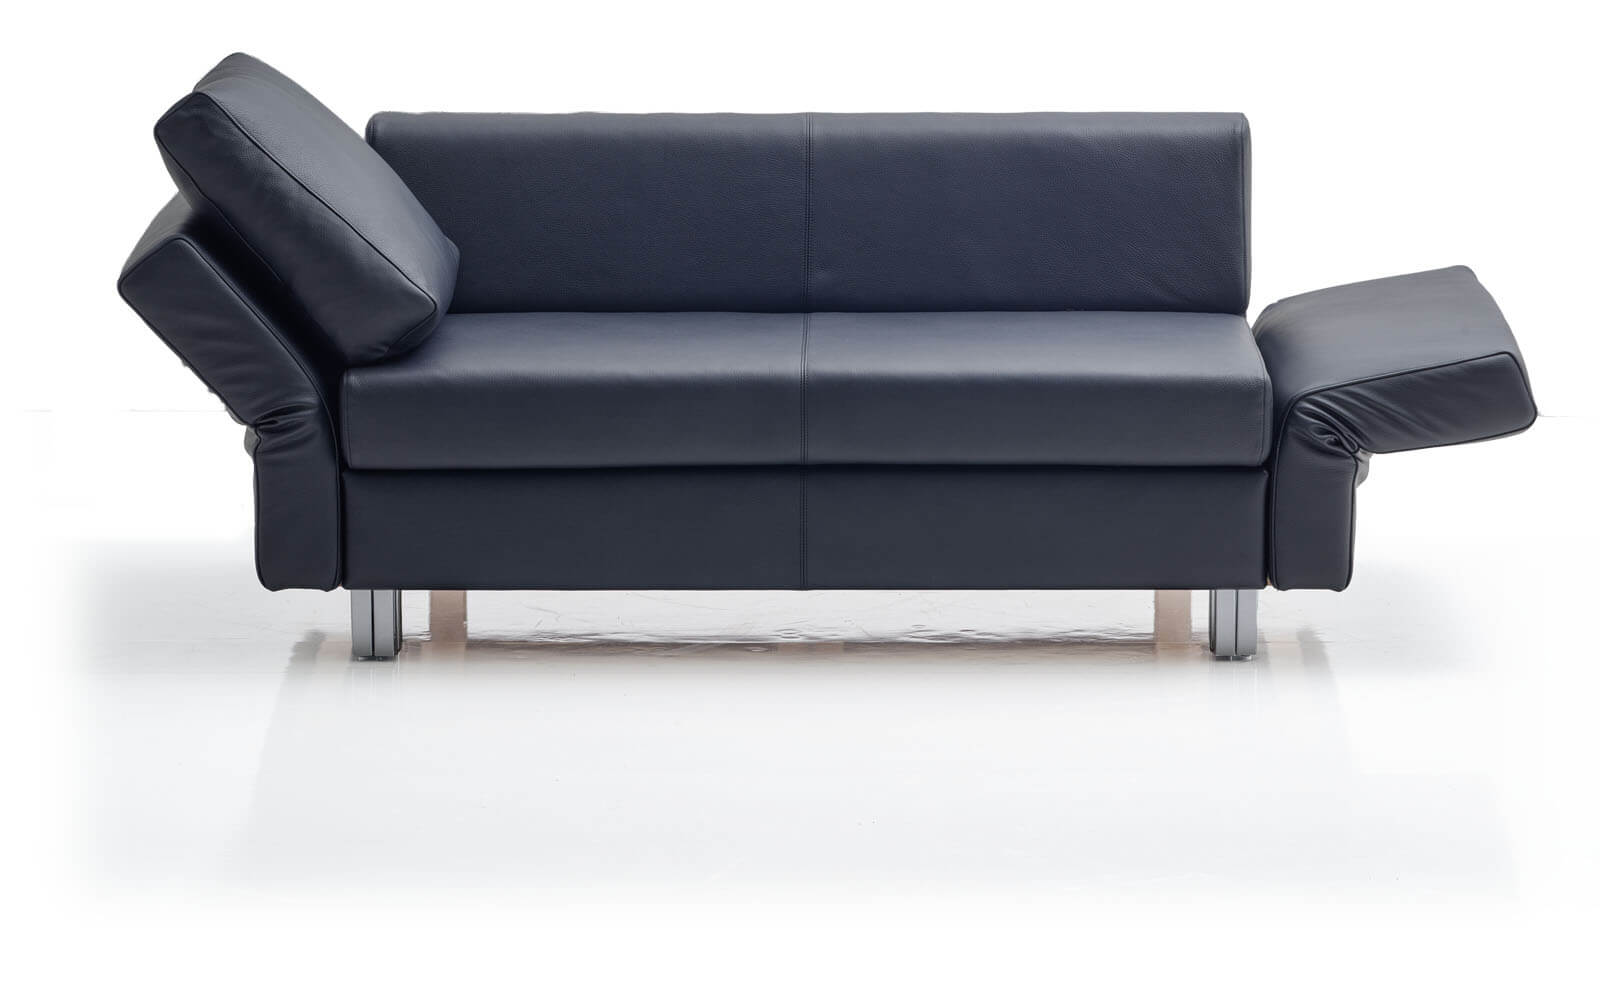 sofabed vip by franz fertig. Black Bedroom Furniture Sets. Home Design Ideas